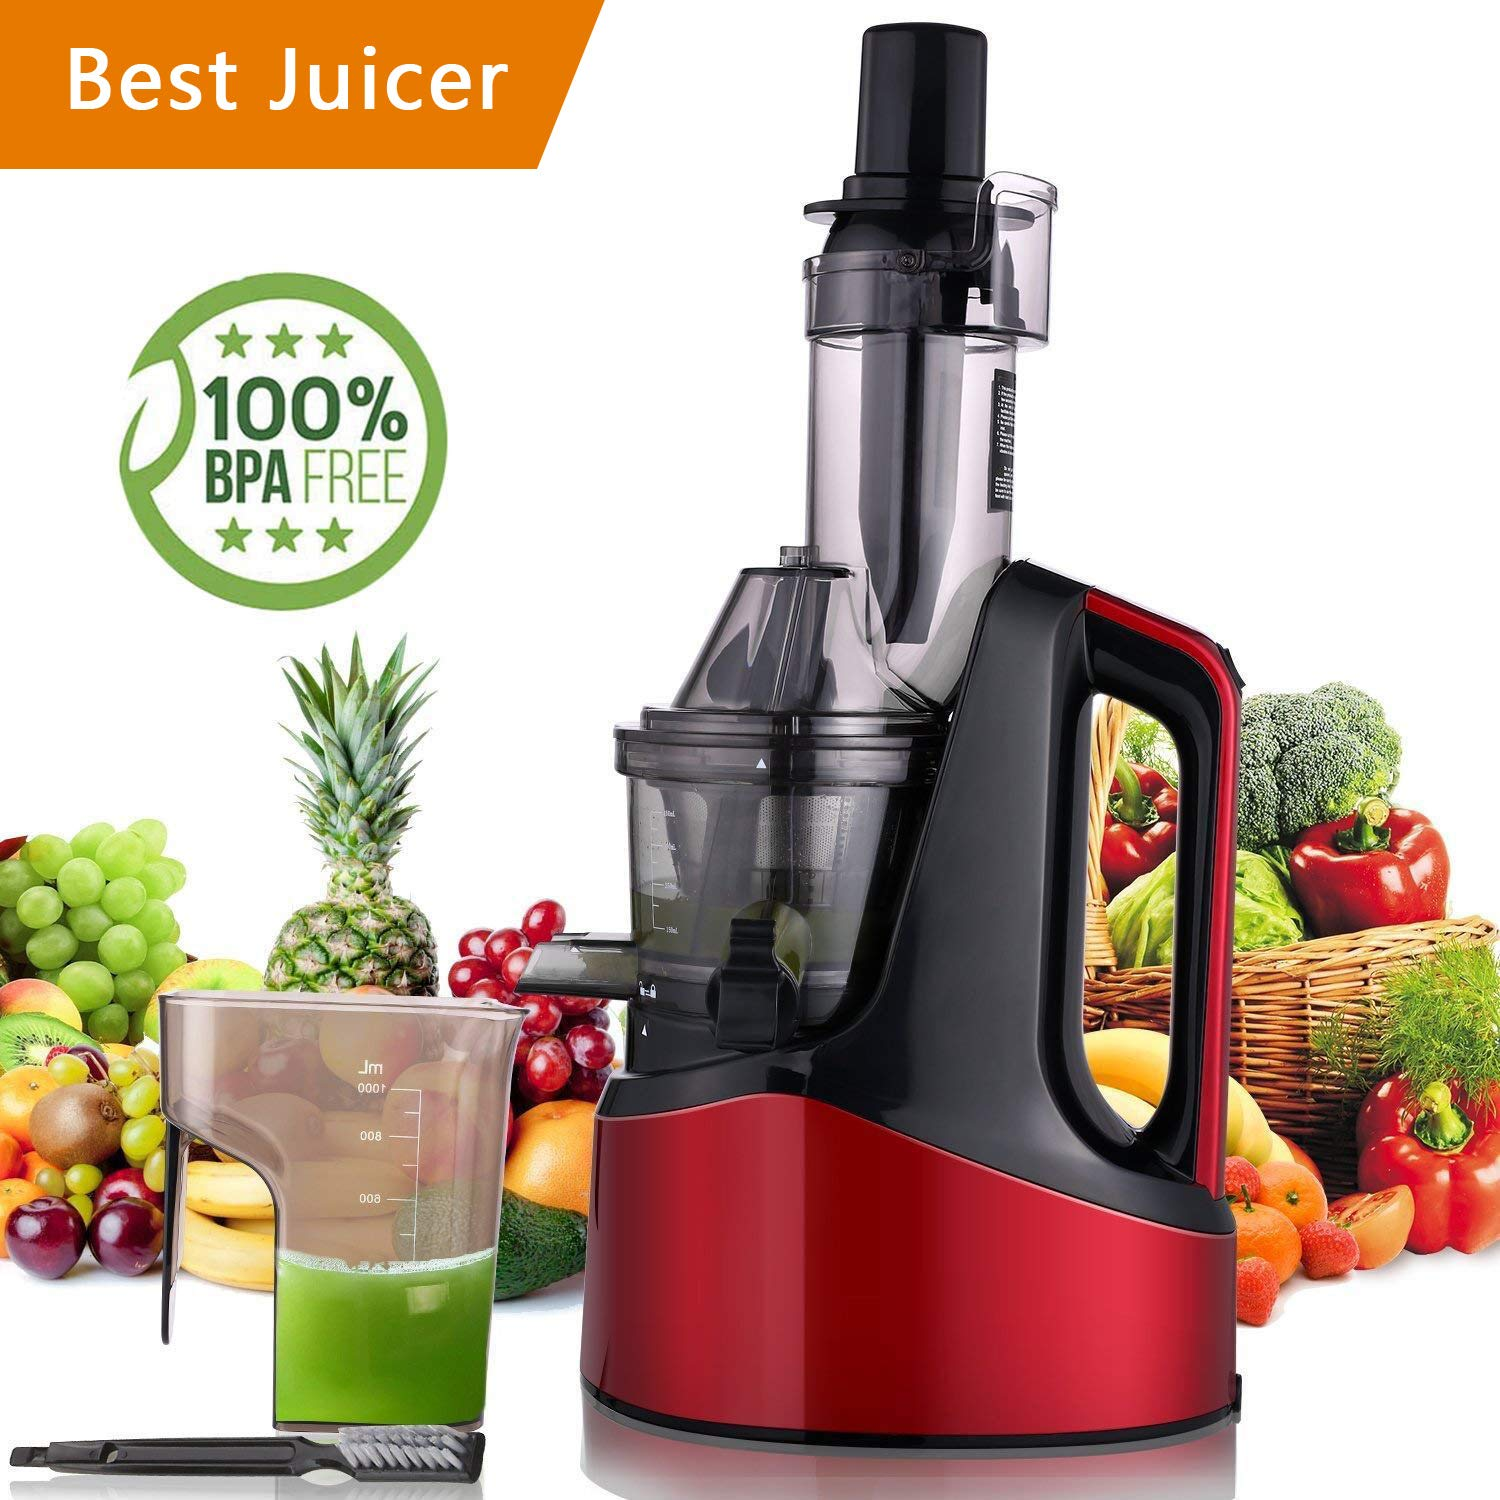 Slow Masticating Juicer Extractor, Cold Press Juicer Machine with Brush to Clean Conveniently High Nutrient Fruit and Vegetable Juice (Red) SuperPostman